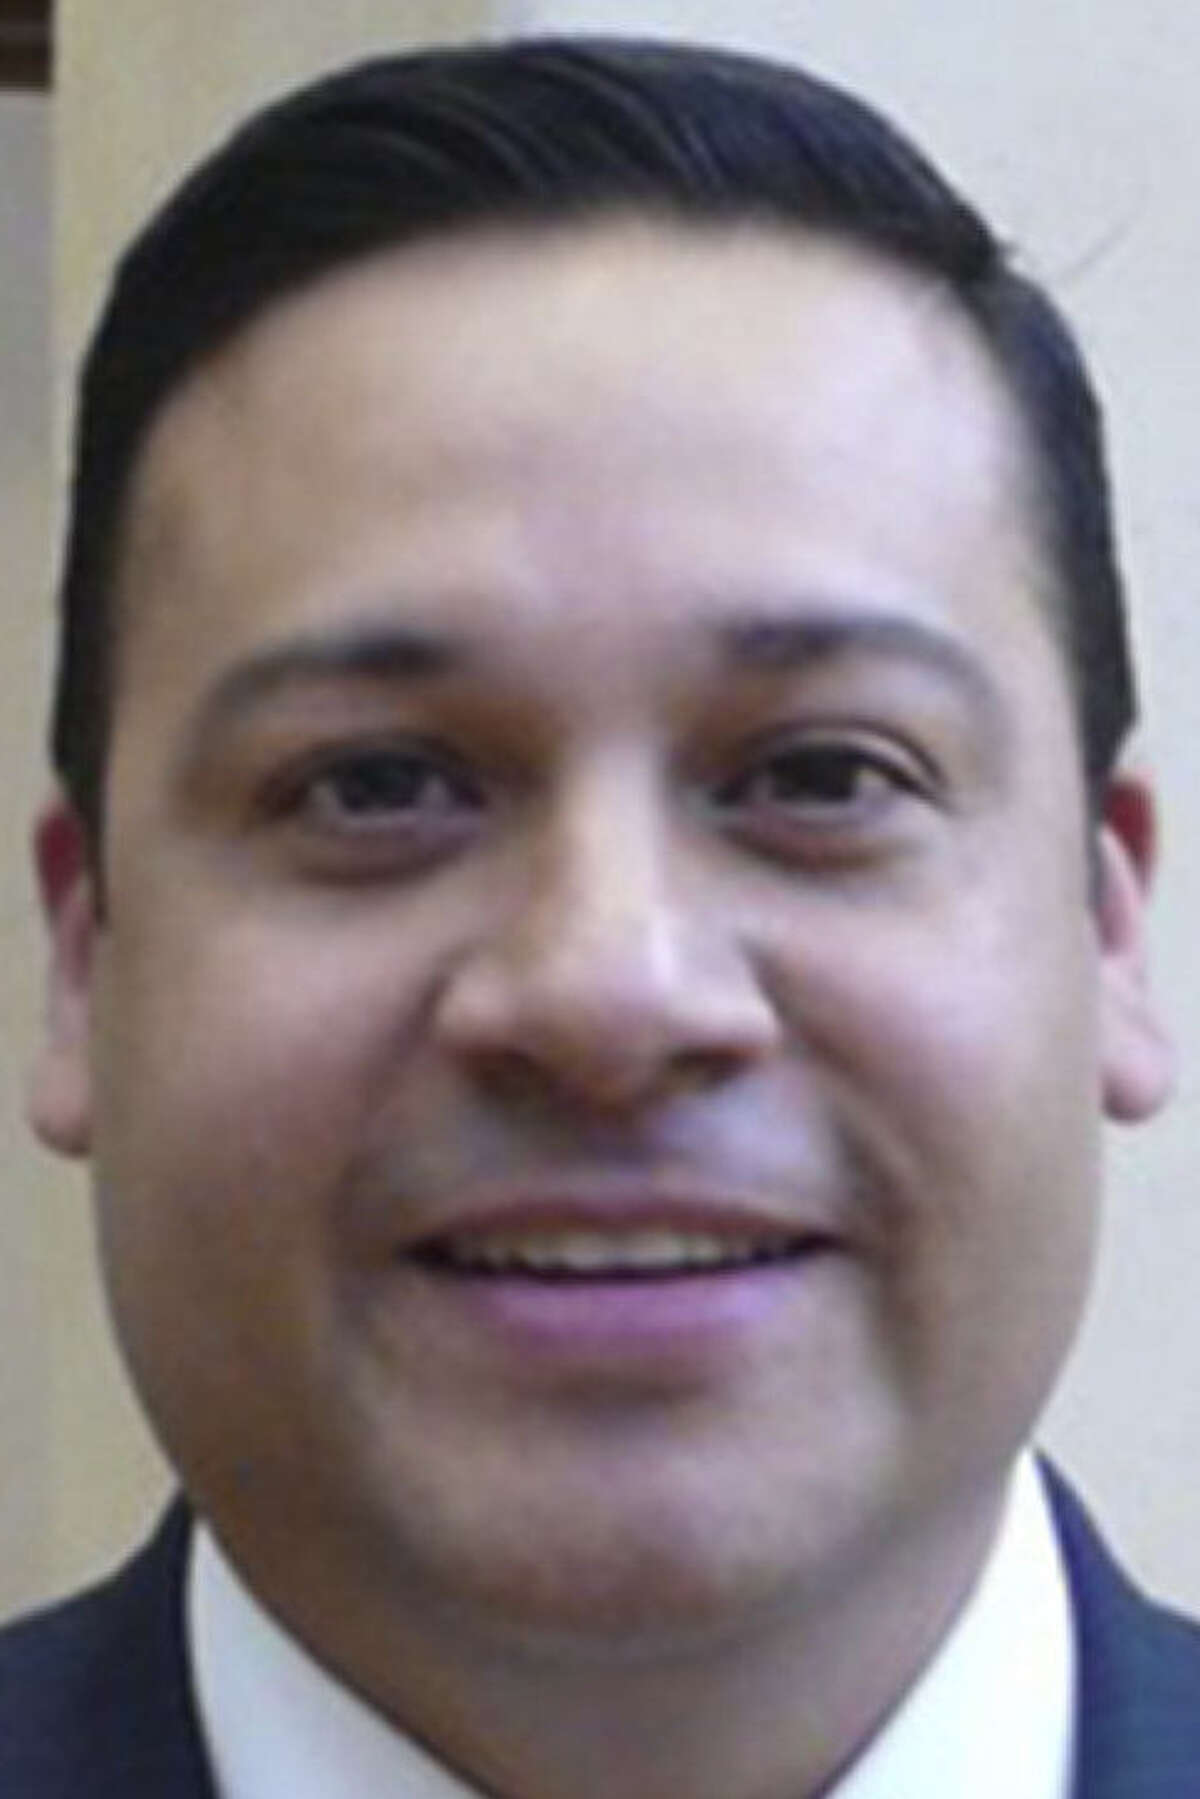 State Rep. Jason Villalba says the Republican Party needs to win Hispanic Texans' votes to avoid extinction.